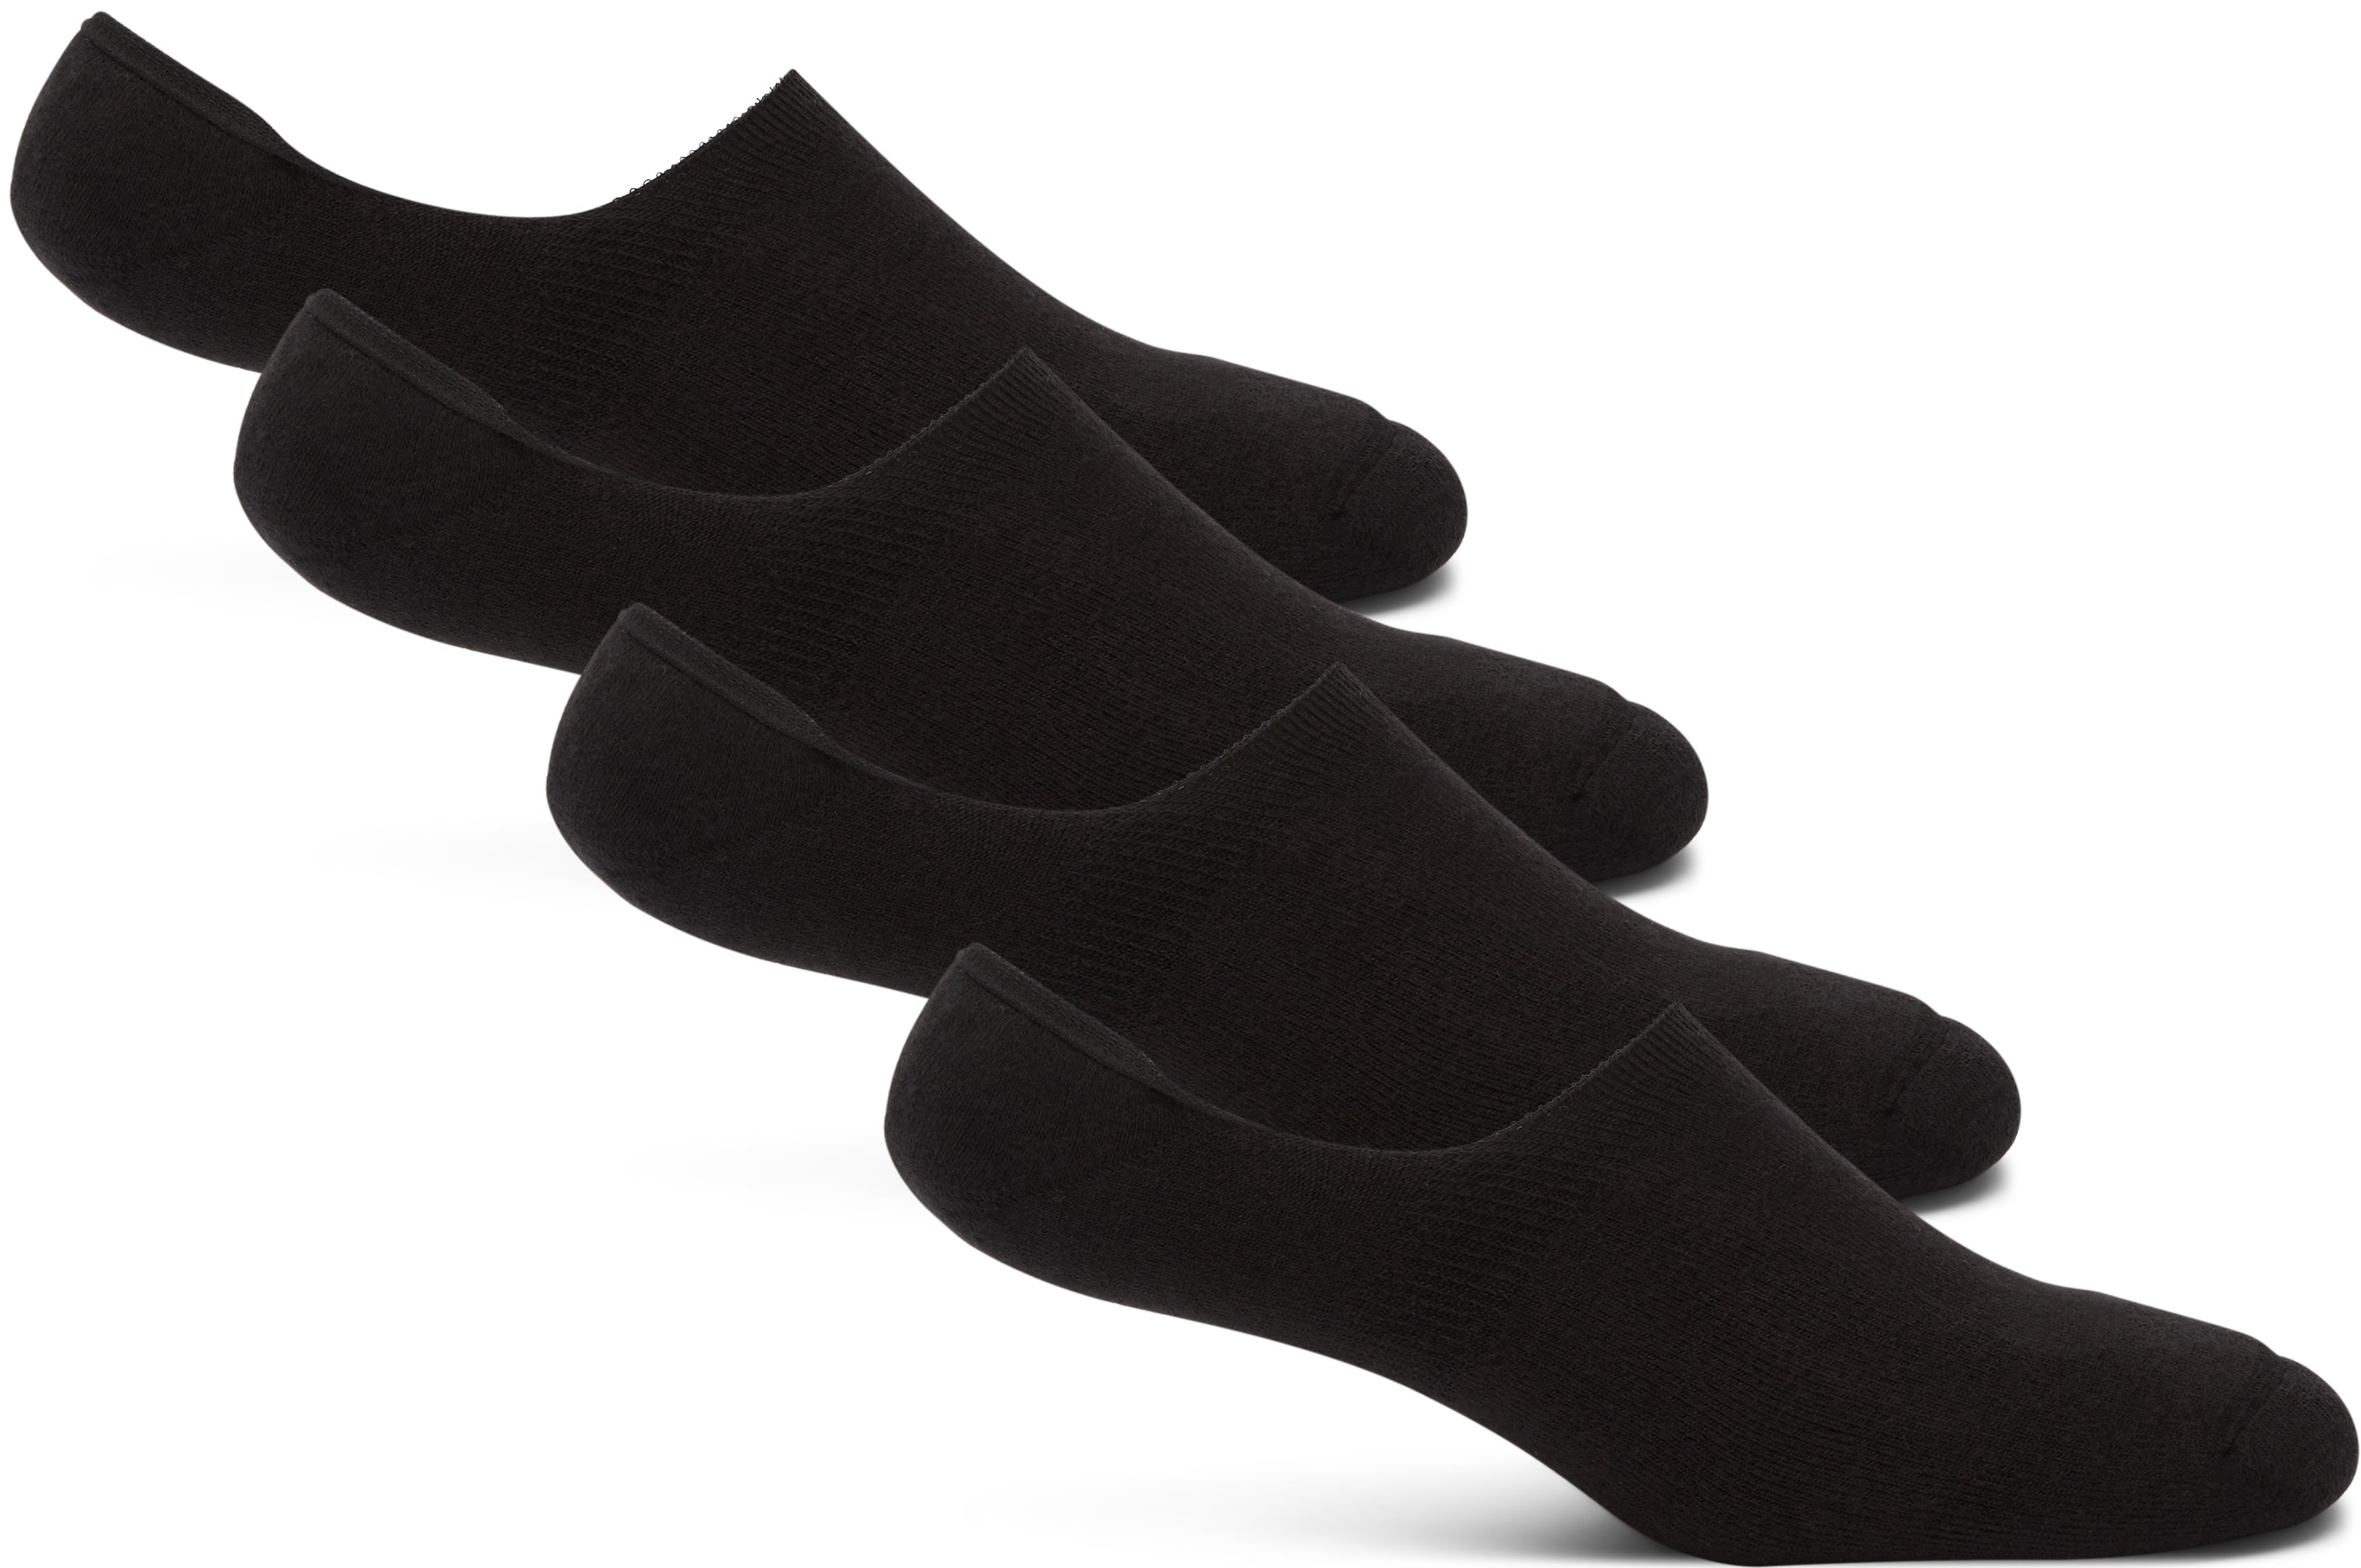 Invisible 4-Pack Socks - Strømper - Sort